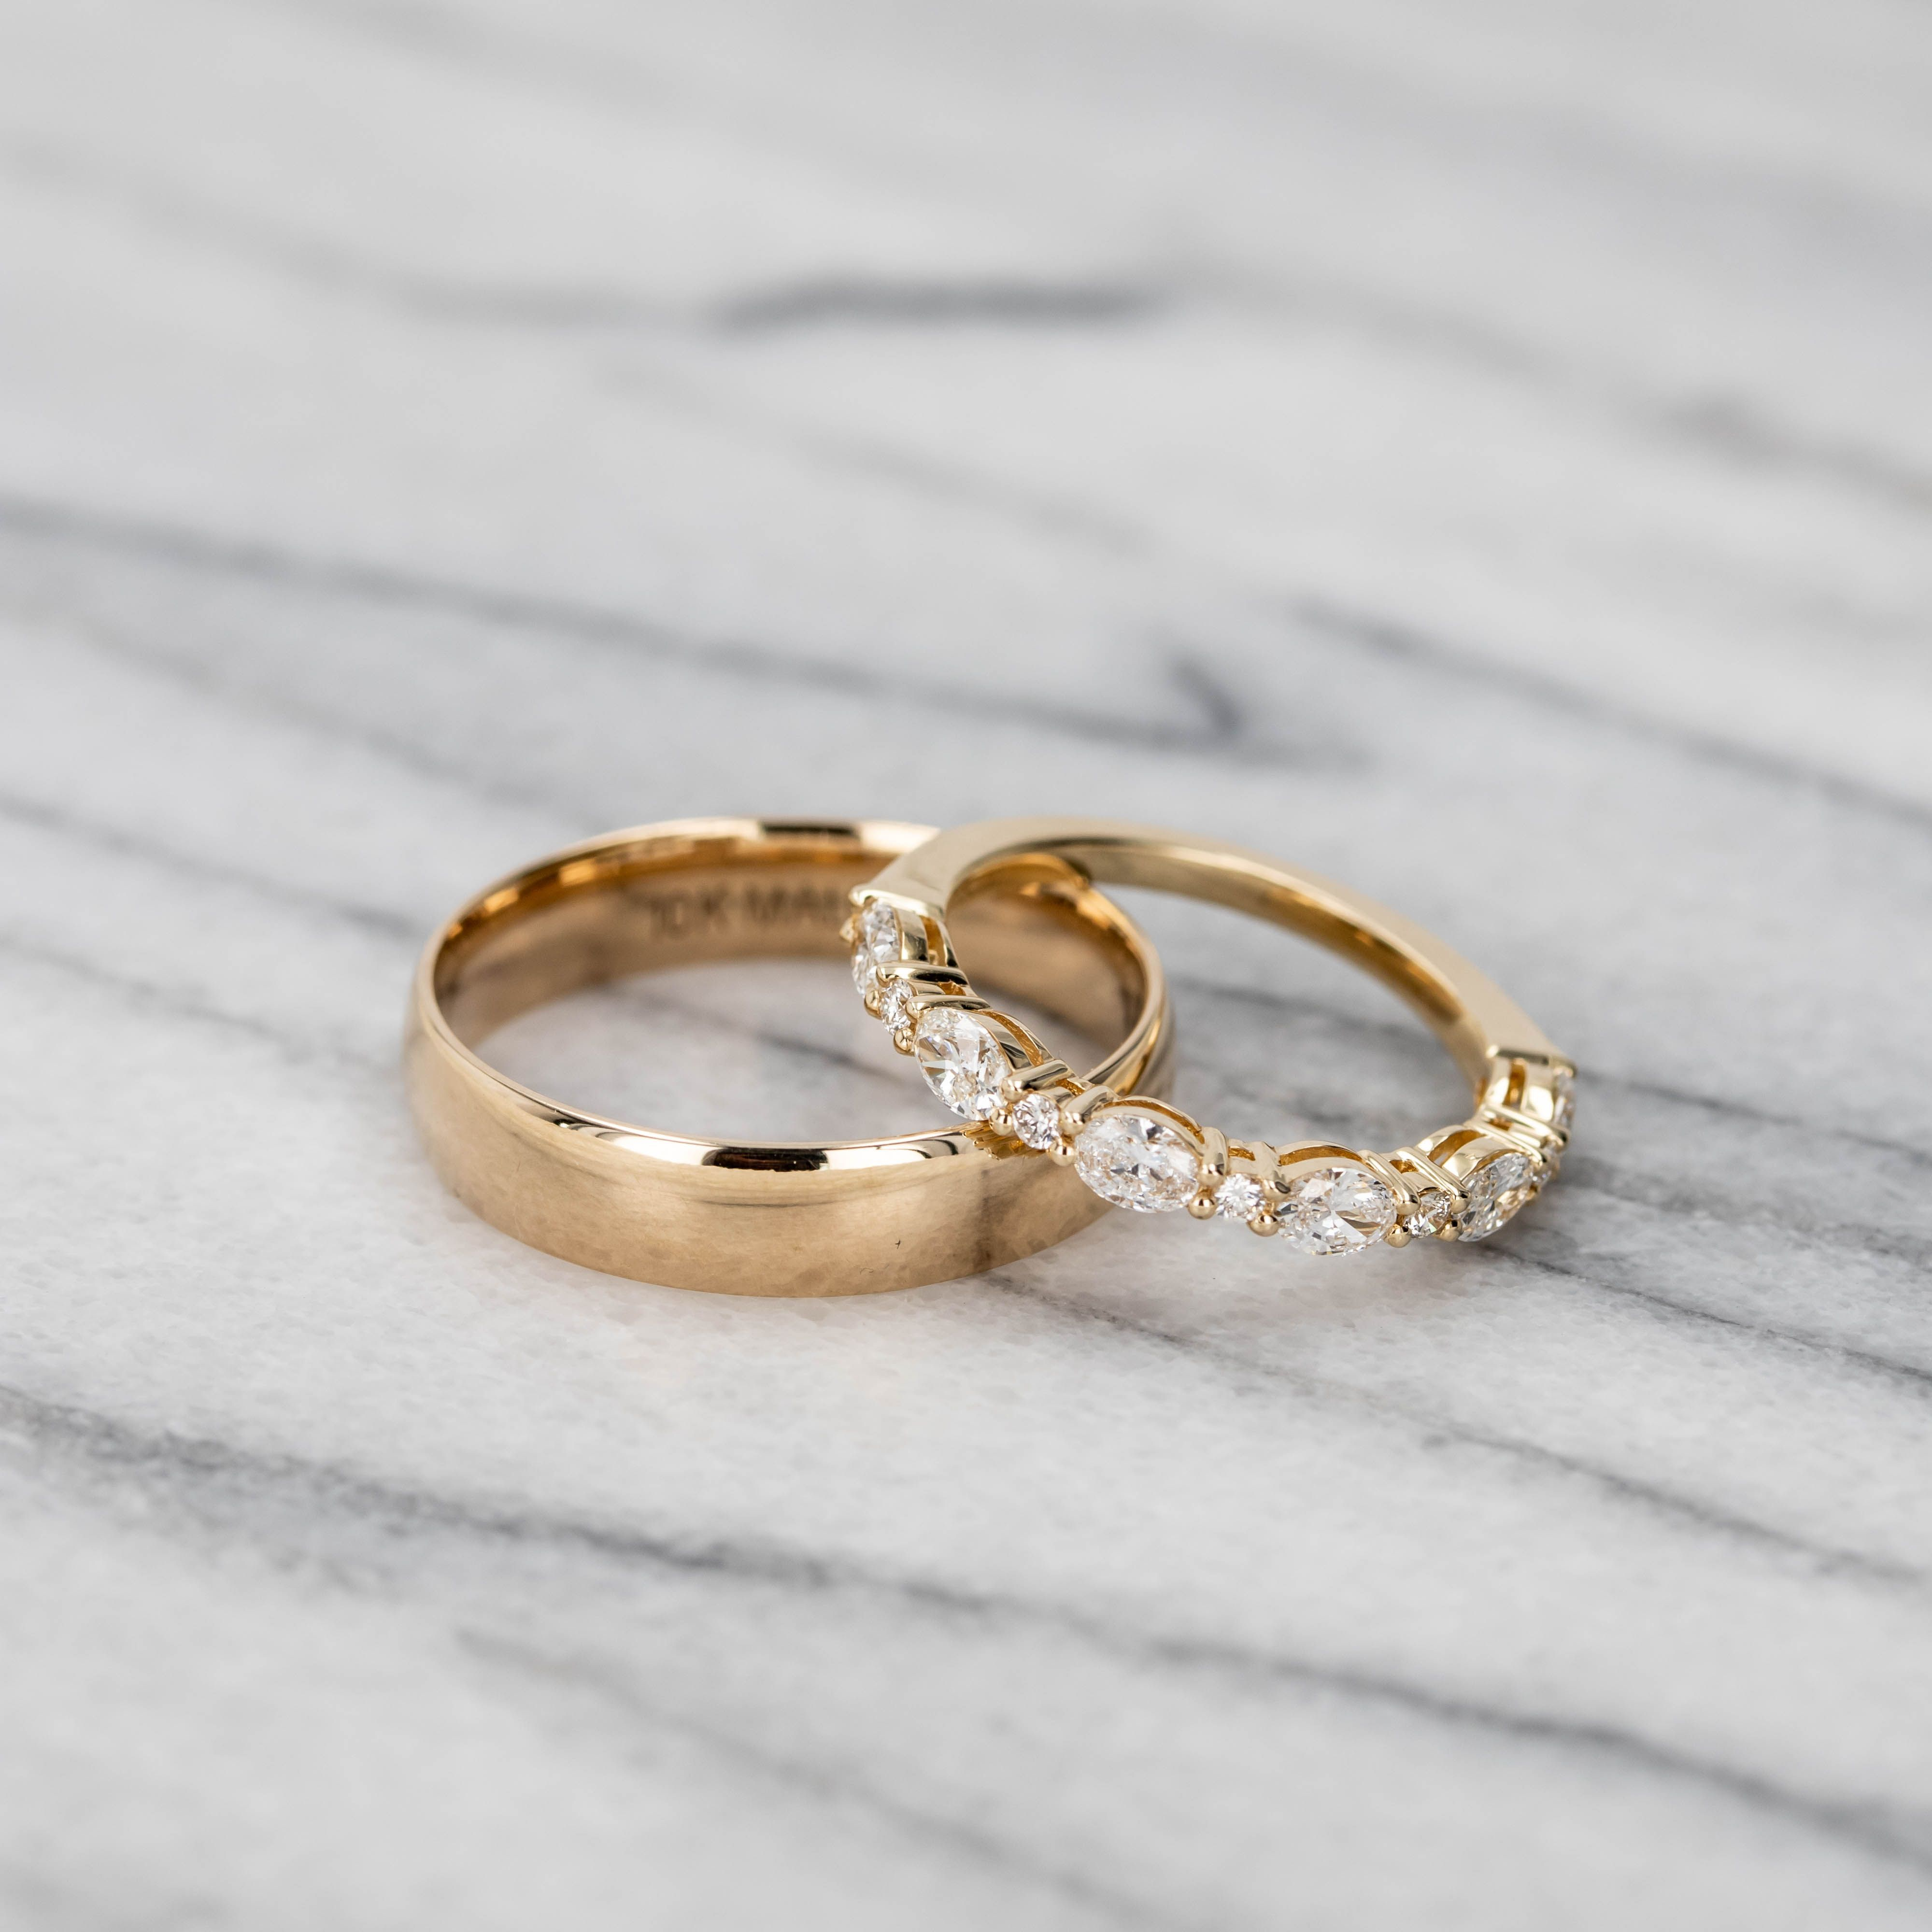 These Yellow Gold Wedding Bands Will Be A Lifelong Essential Tag Your Love If You Agre Matching Wedding Bands Gold Couple Wedding Rings Gold Wedding Band Sets